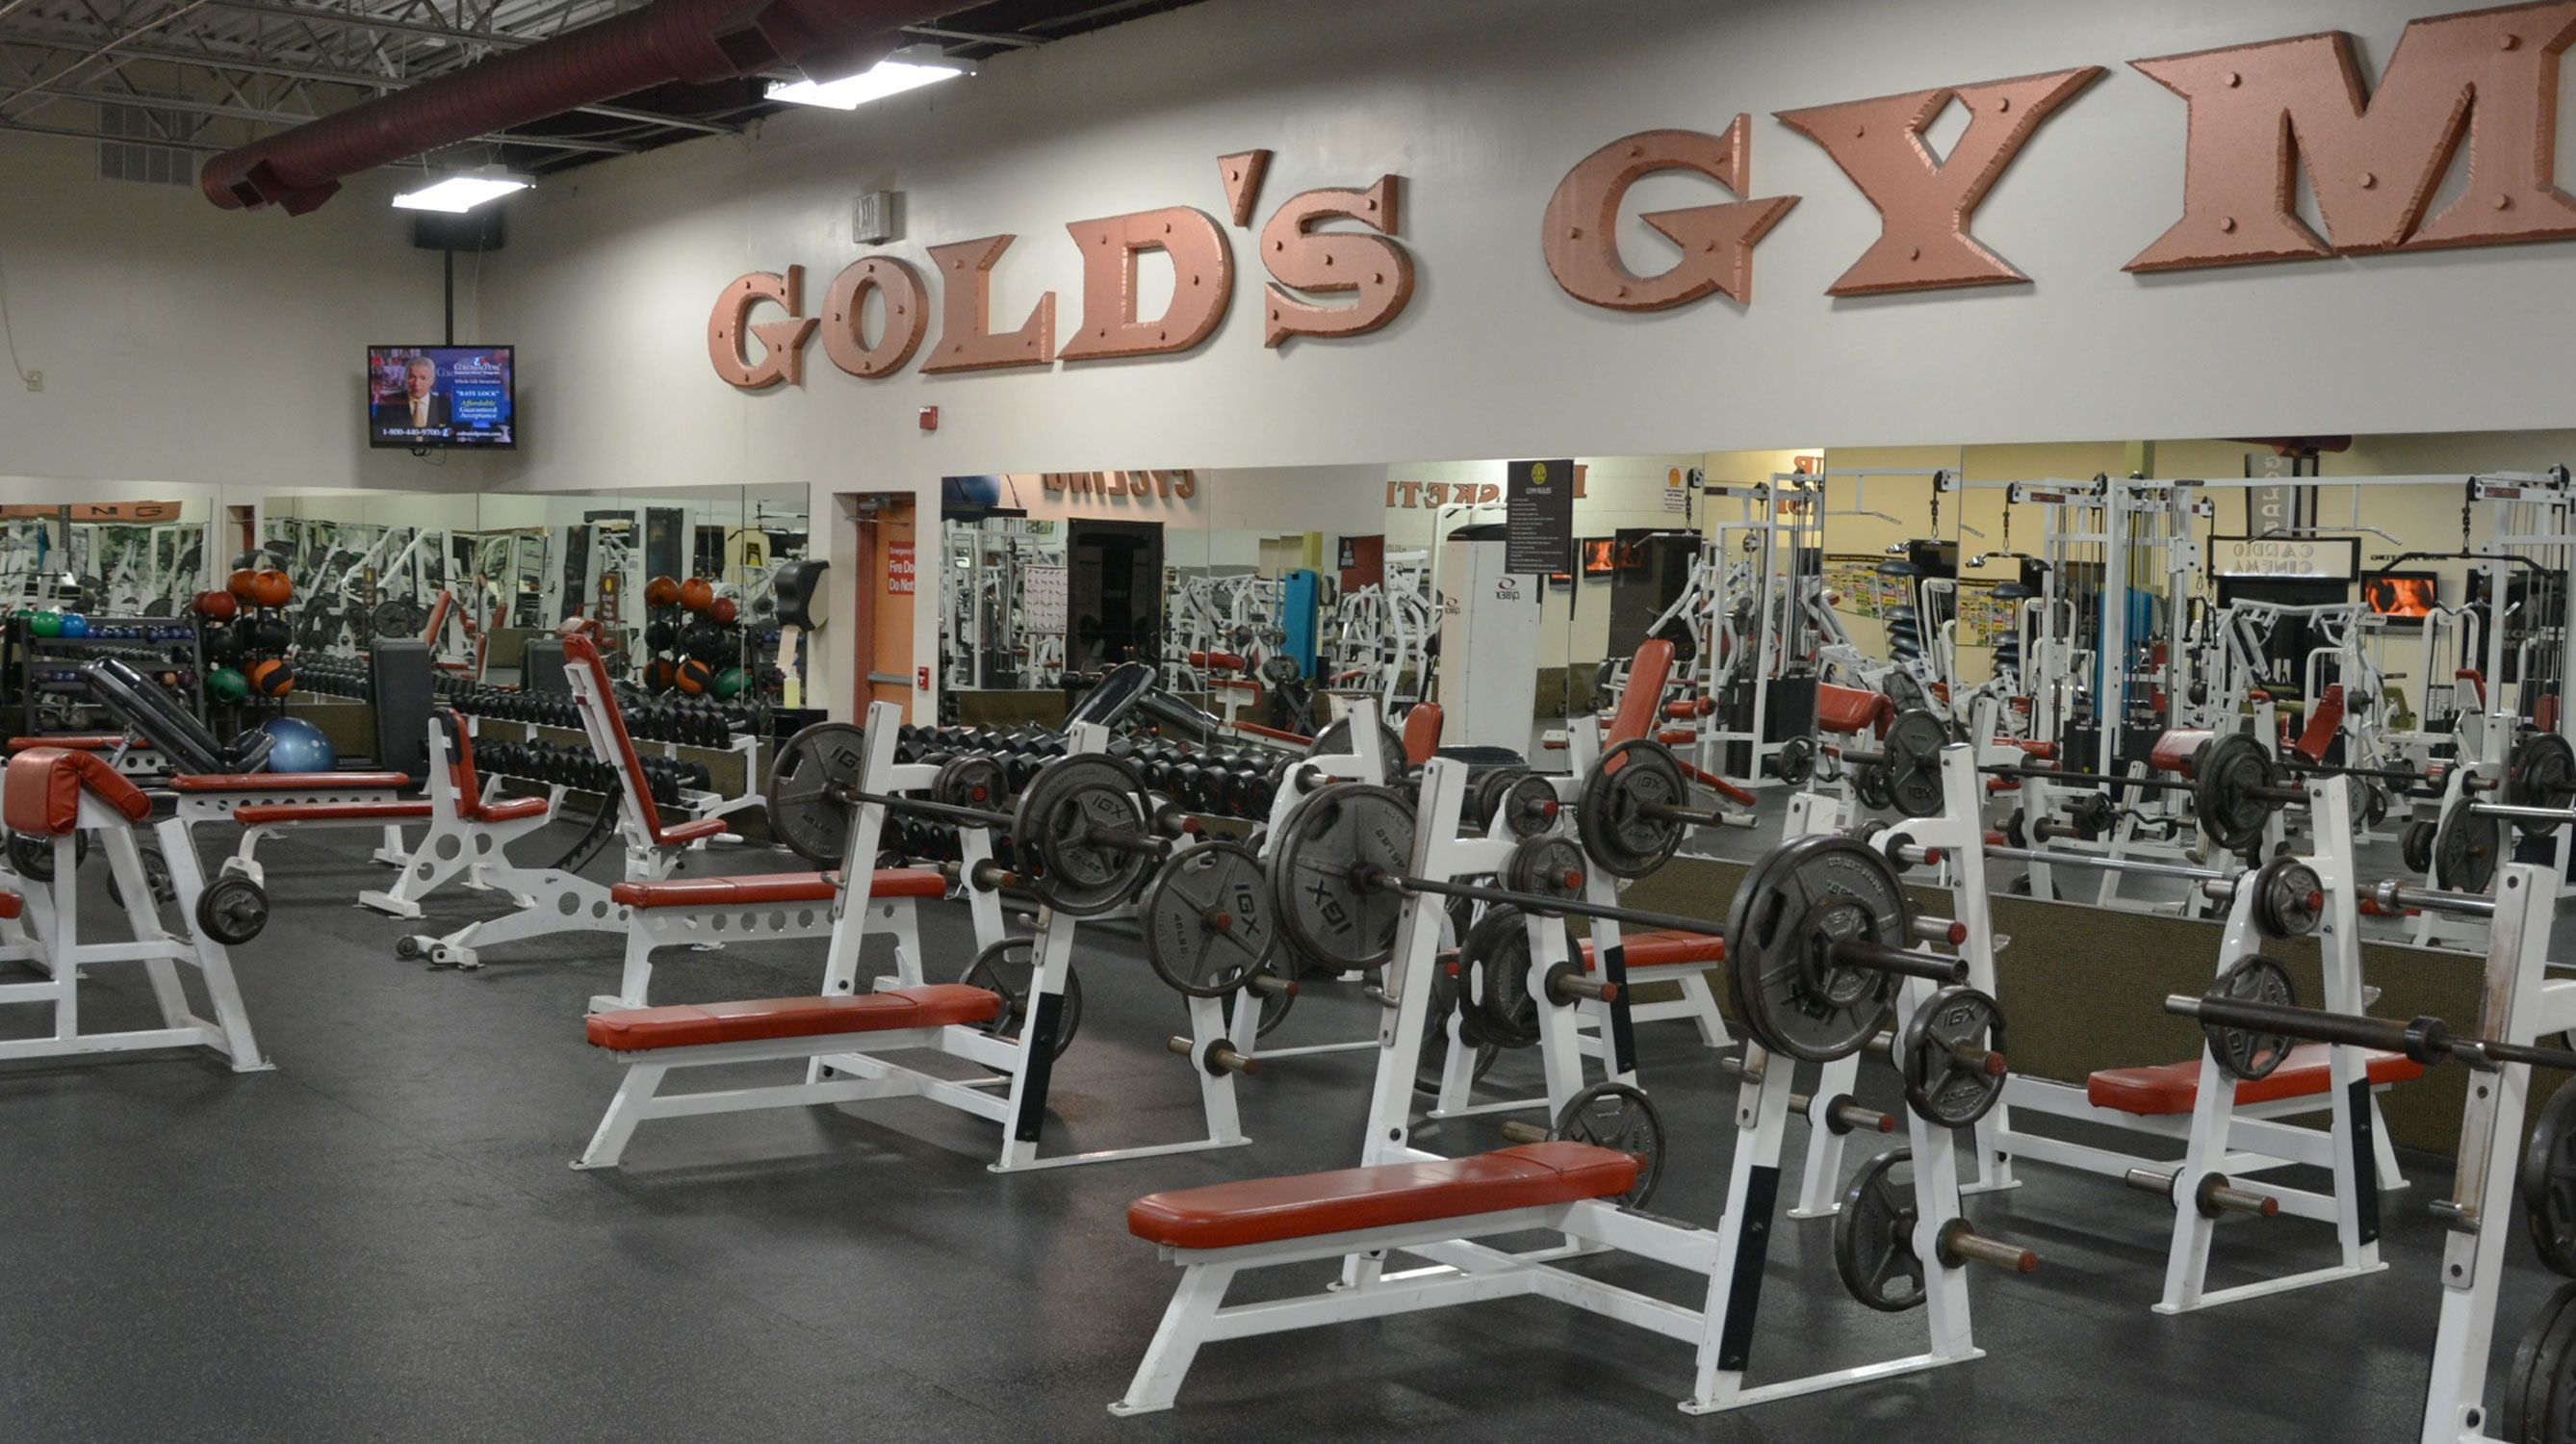 Gold S Gym Prices Gold S Gym Price List Guide Gym Prices Golds Gym Gym Membership